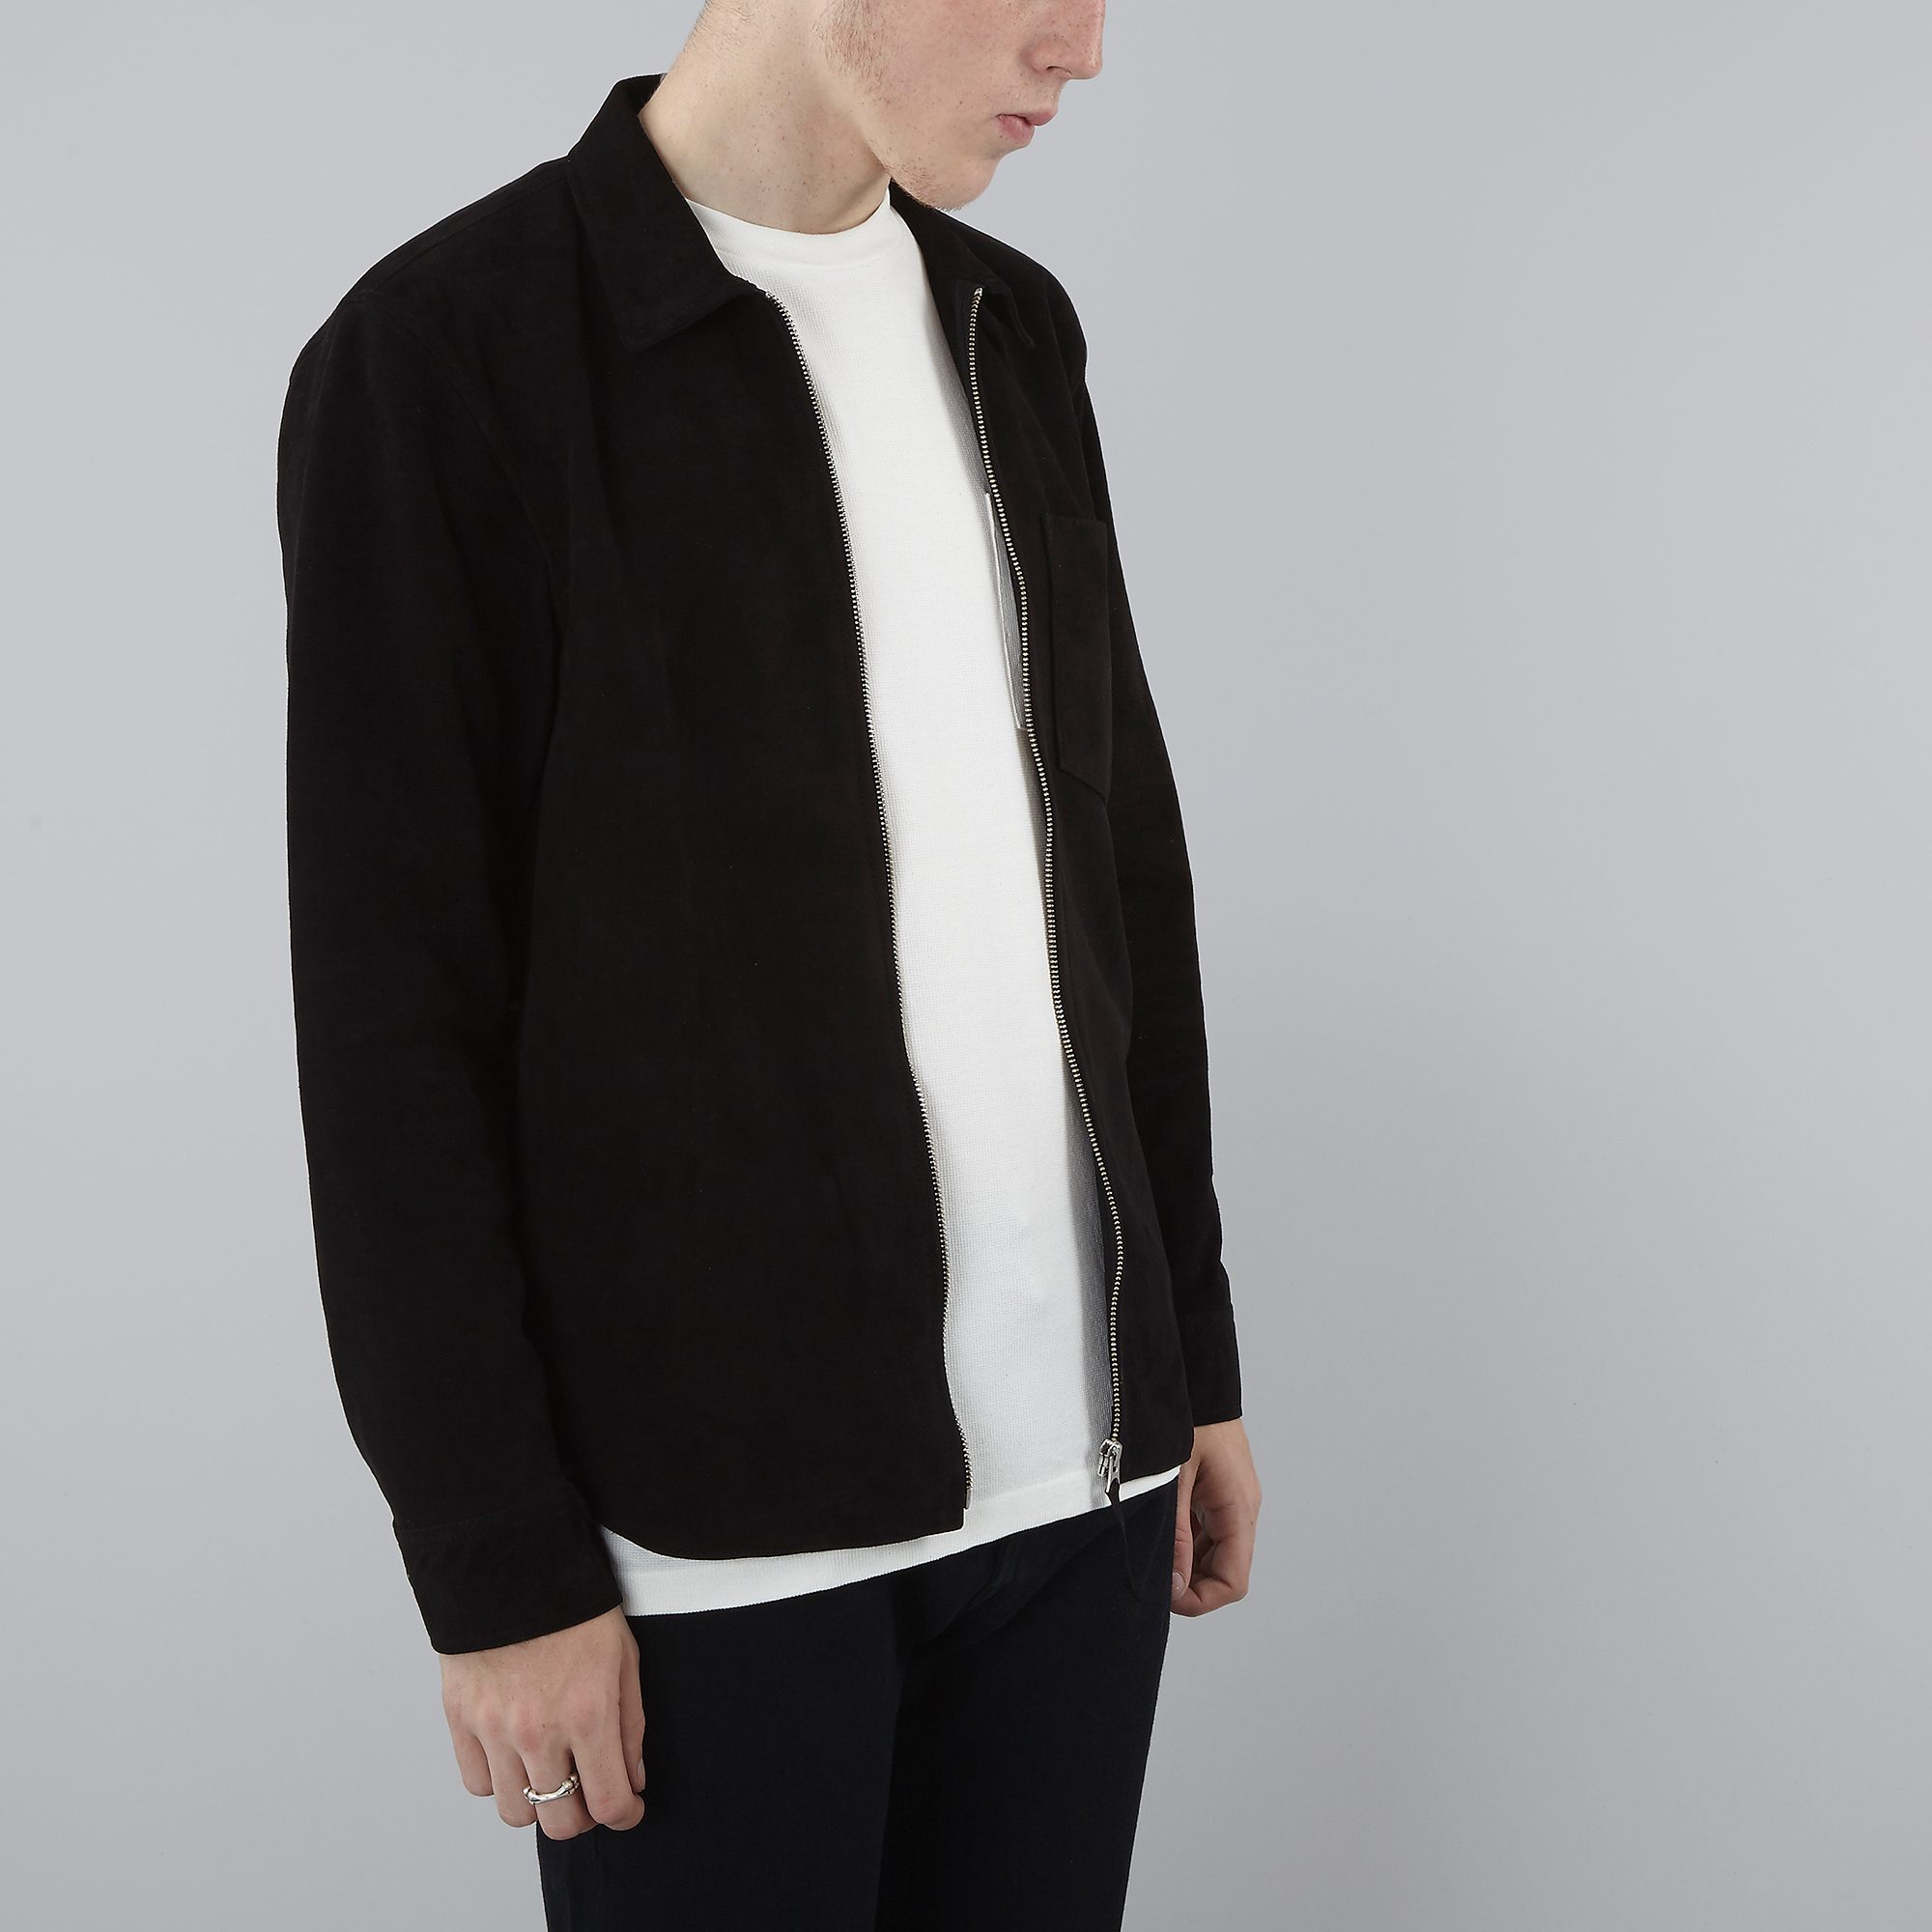 9b718ebfbbea Our Legacy Suede Zip Shirt - Black